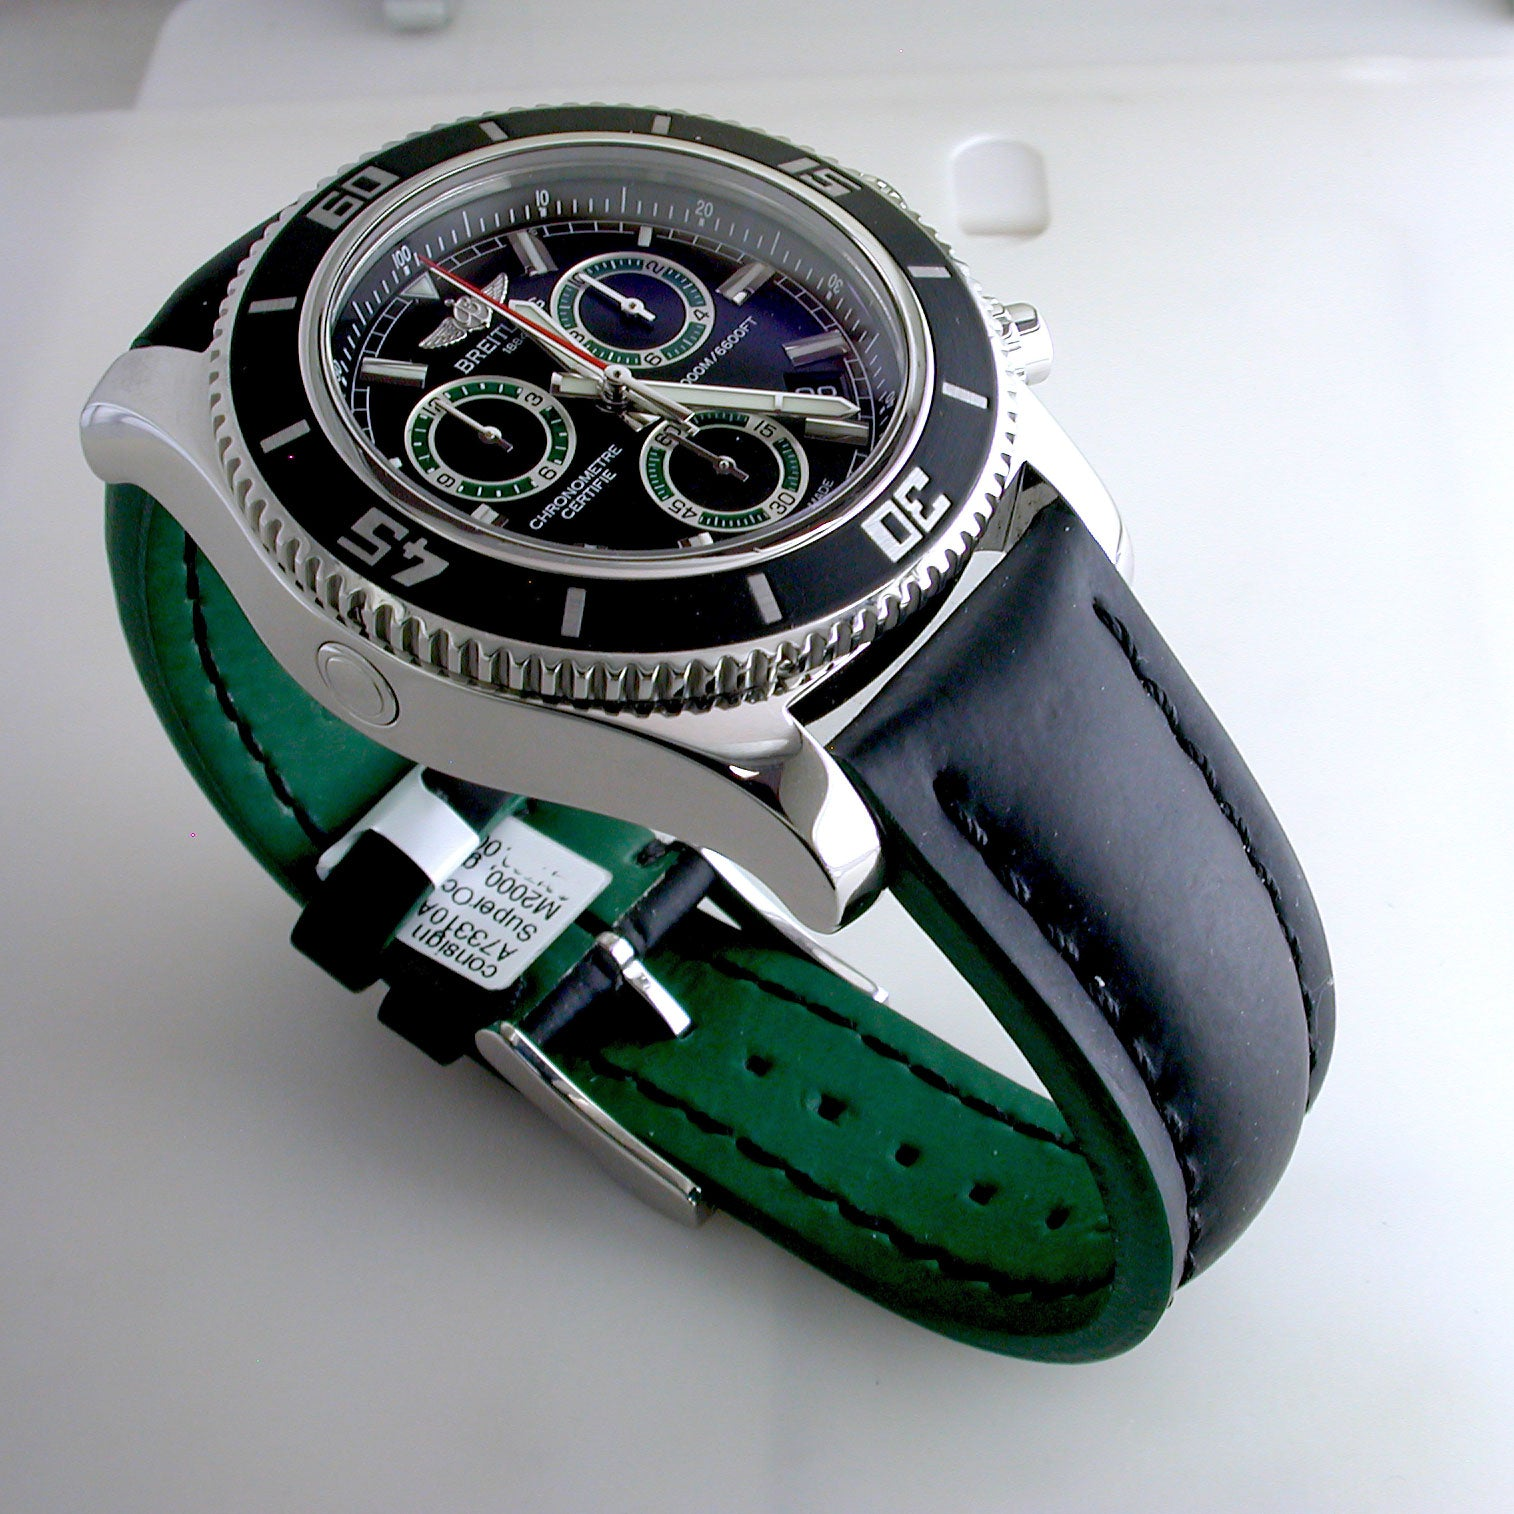 Certified Pre-Owned Breitling Superocean Chronograph Steel Black Green M2000 A73310A8/BB75